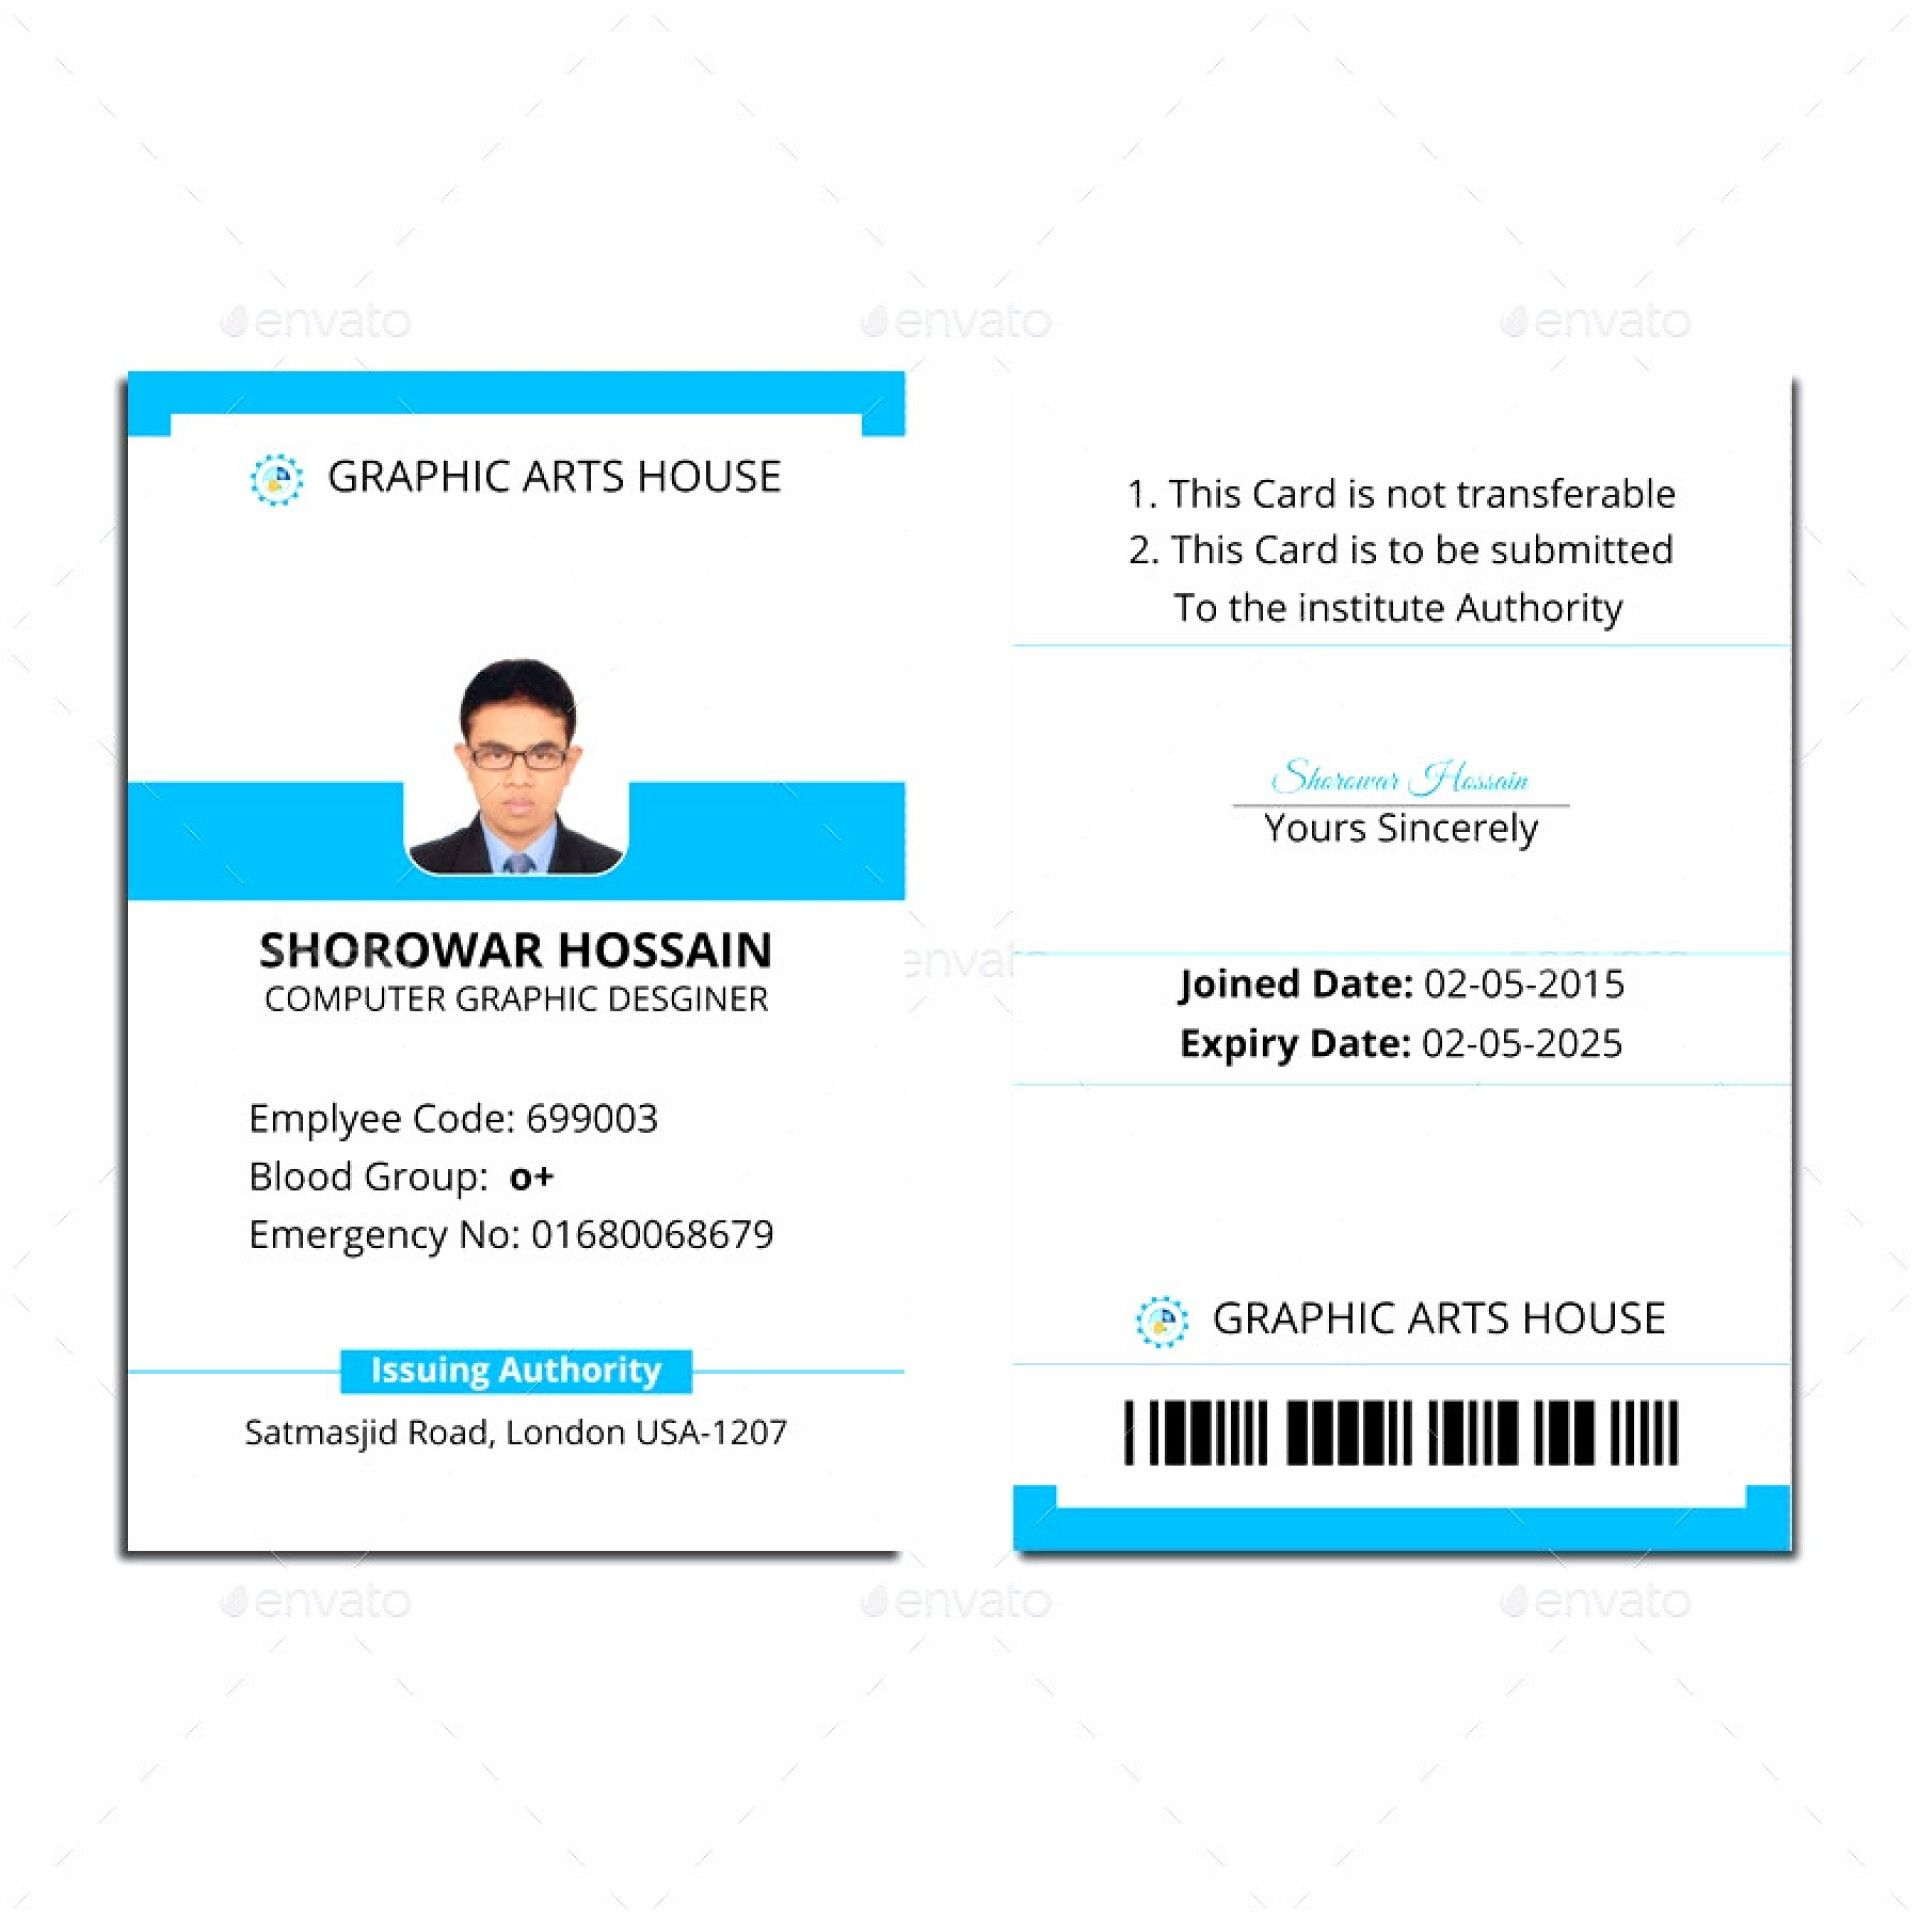 The Amusing 009 Id Card Template Word Ideas 1920x1920 Employee Microsoft Throughout Id Card Template For Microsof Employees Card Id Card Template Card Template